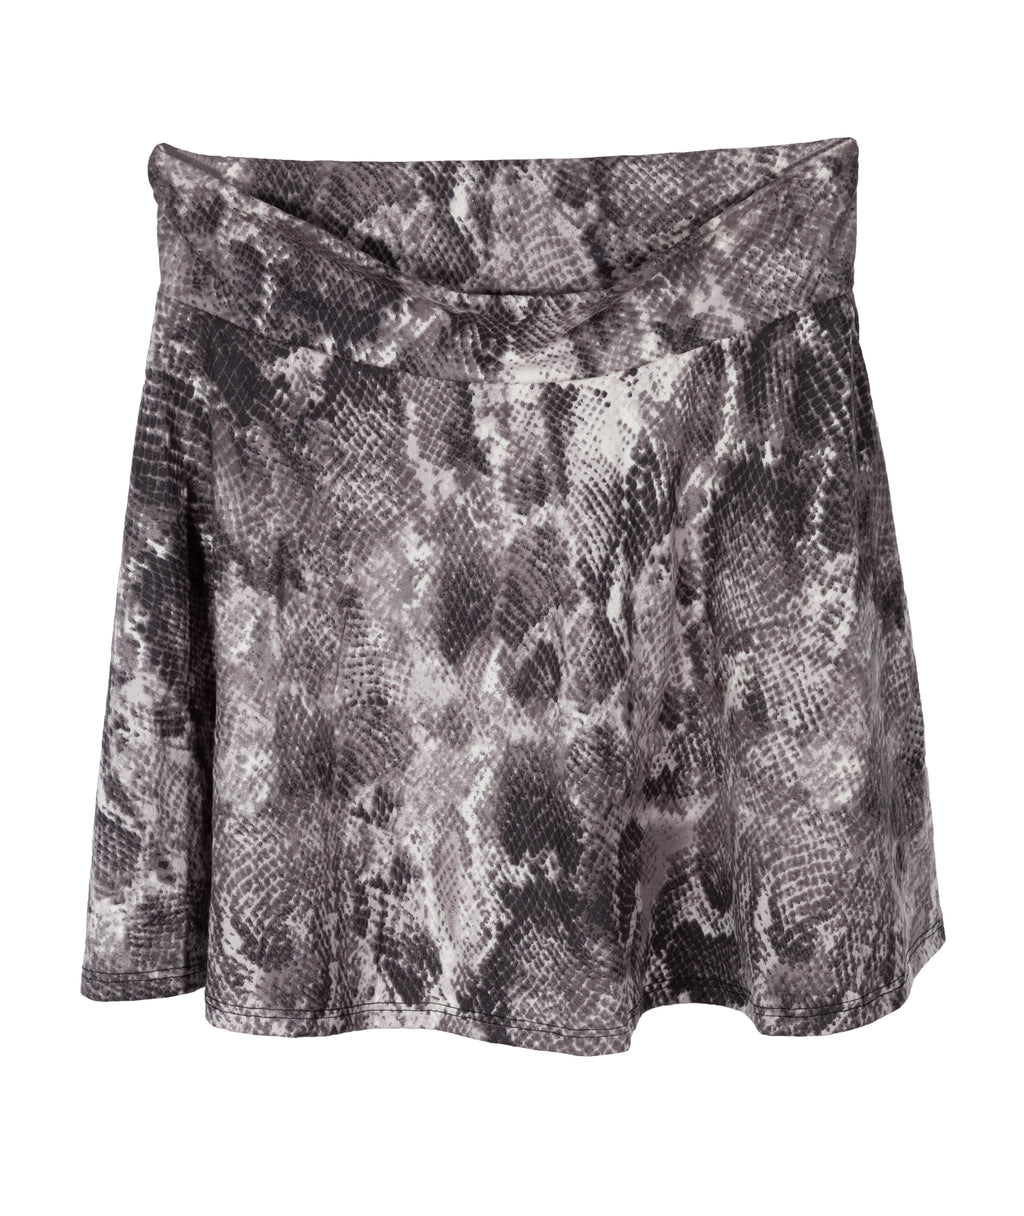 Cheryl Creations Girls Suede Snake Skirt